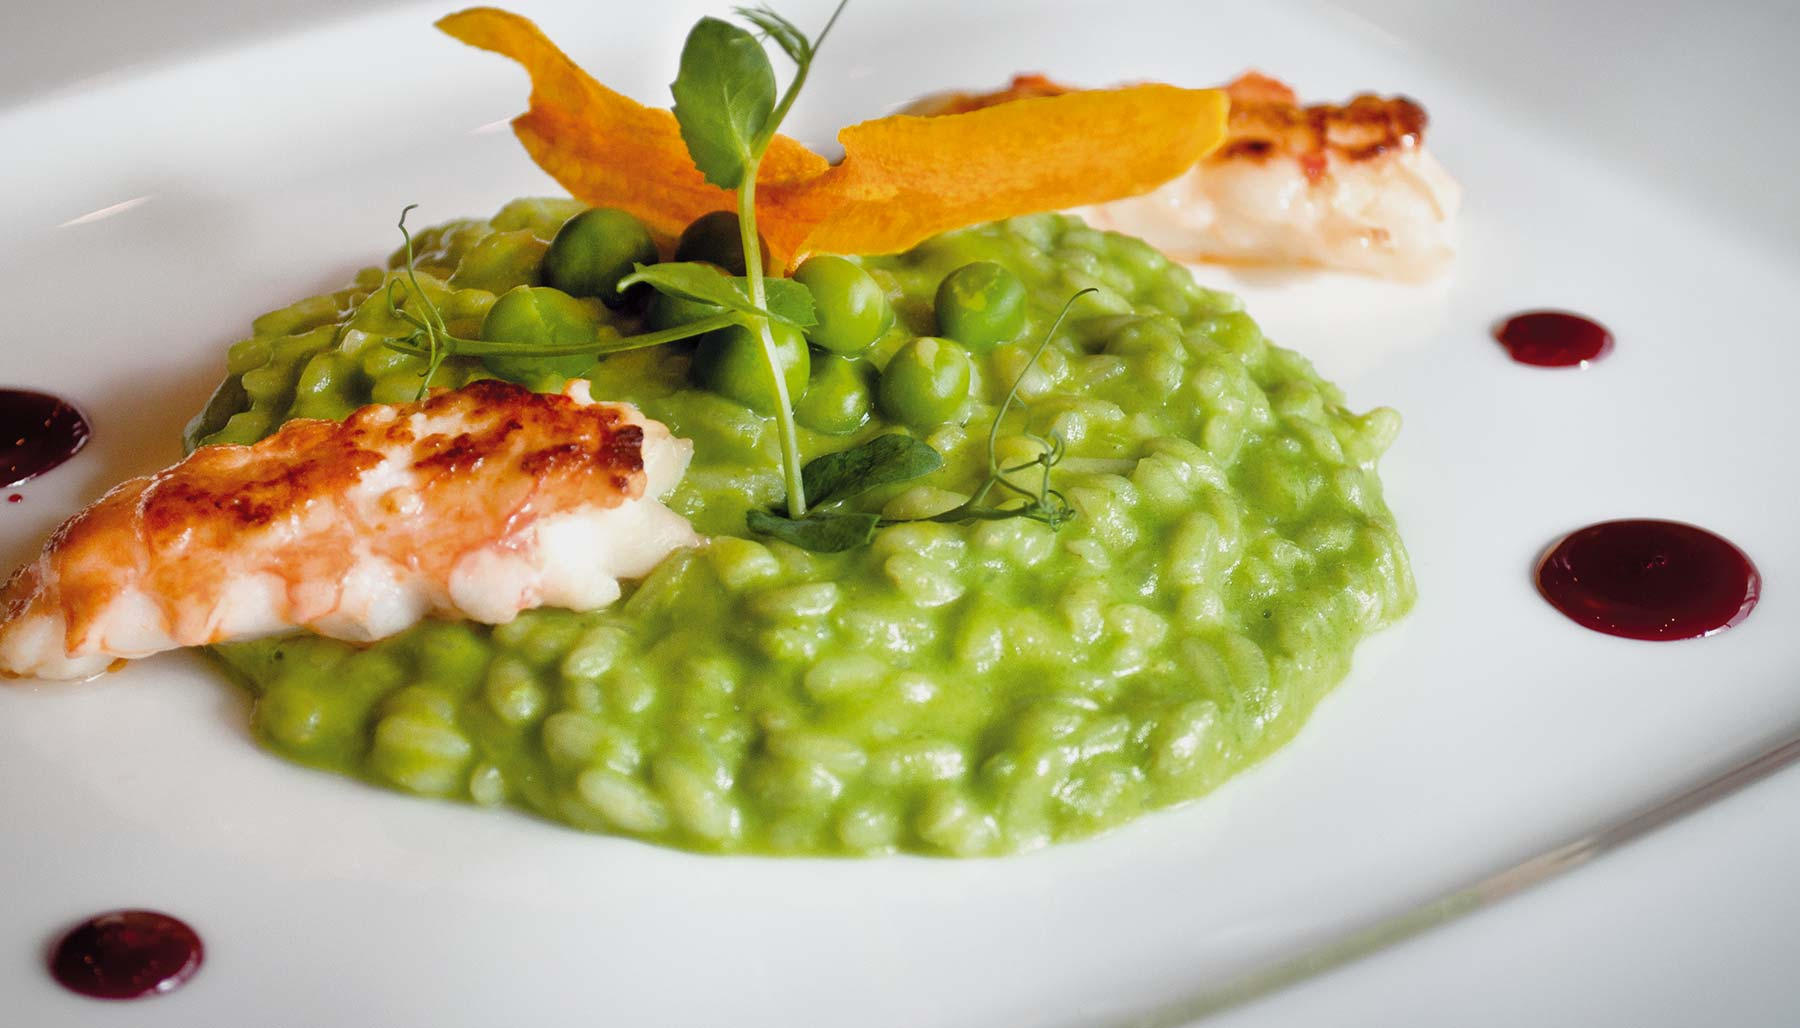 Peas and Pesto Risotto